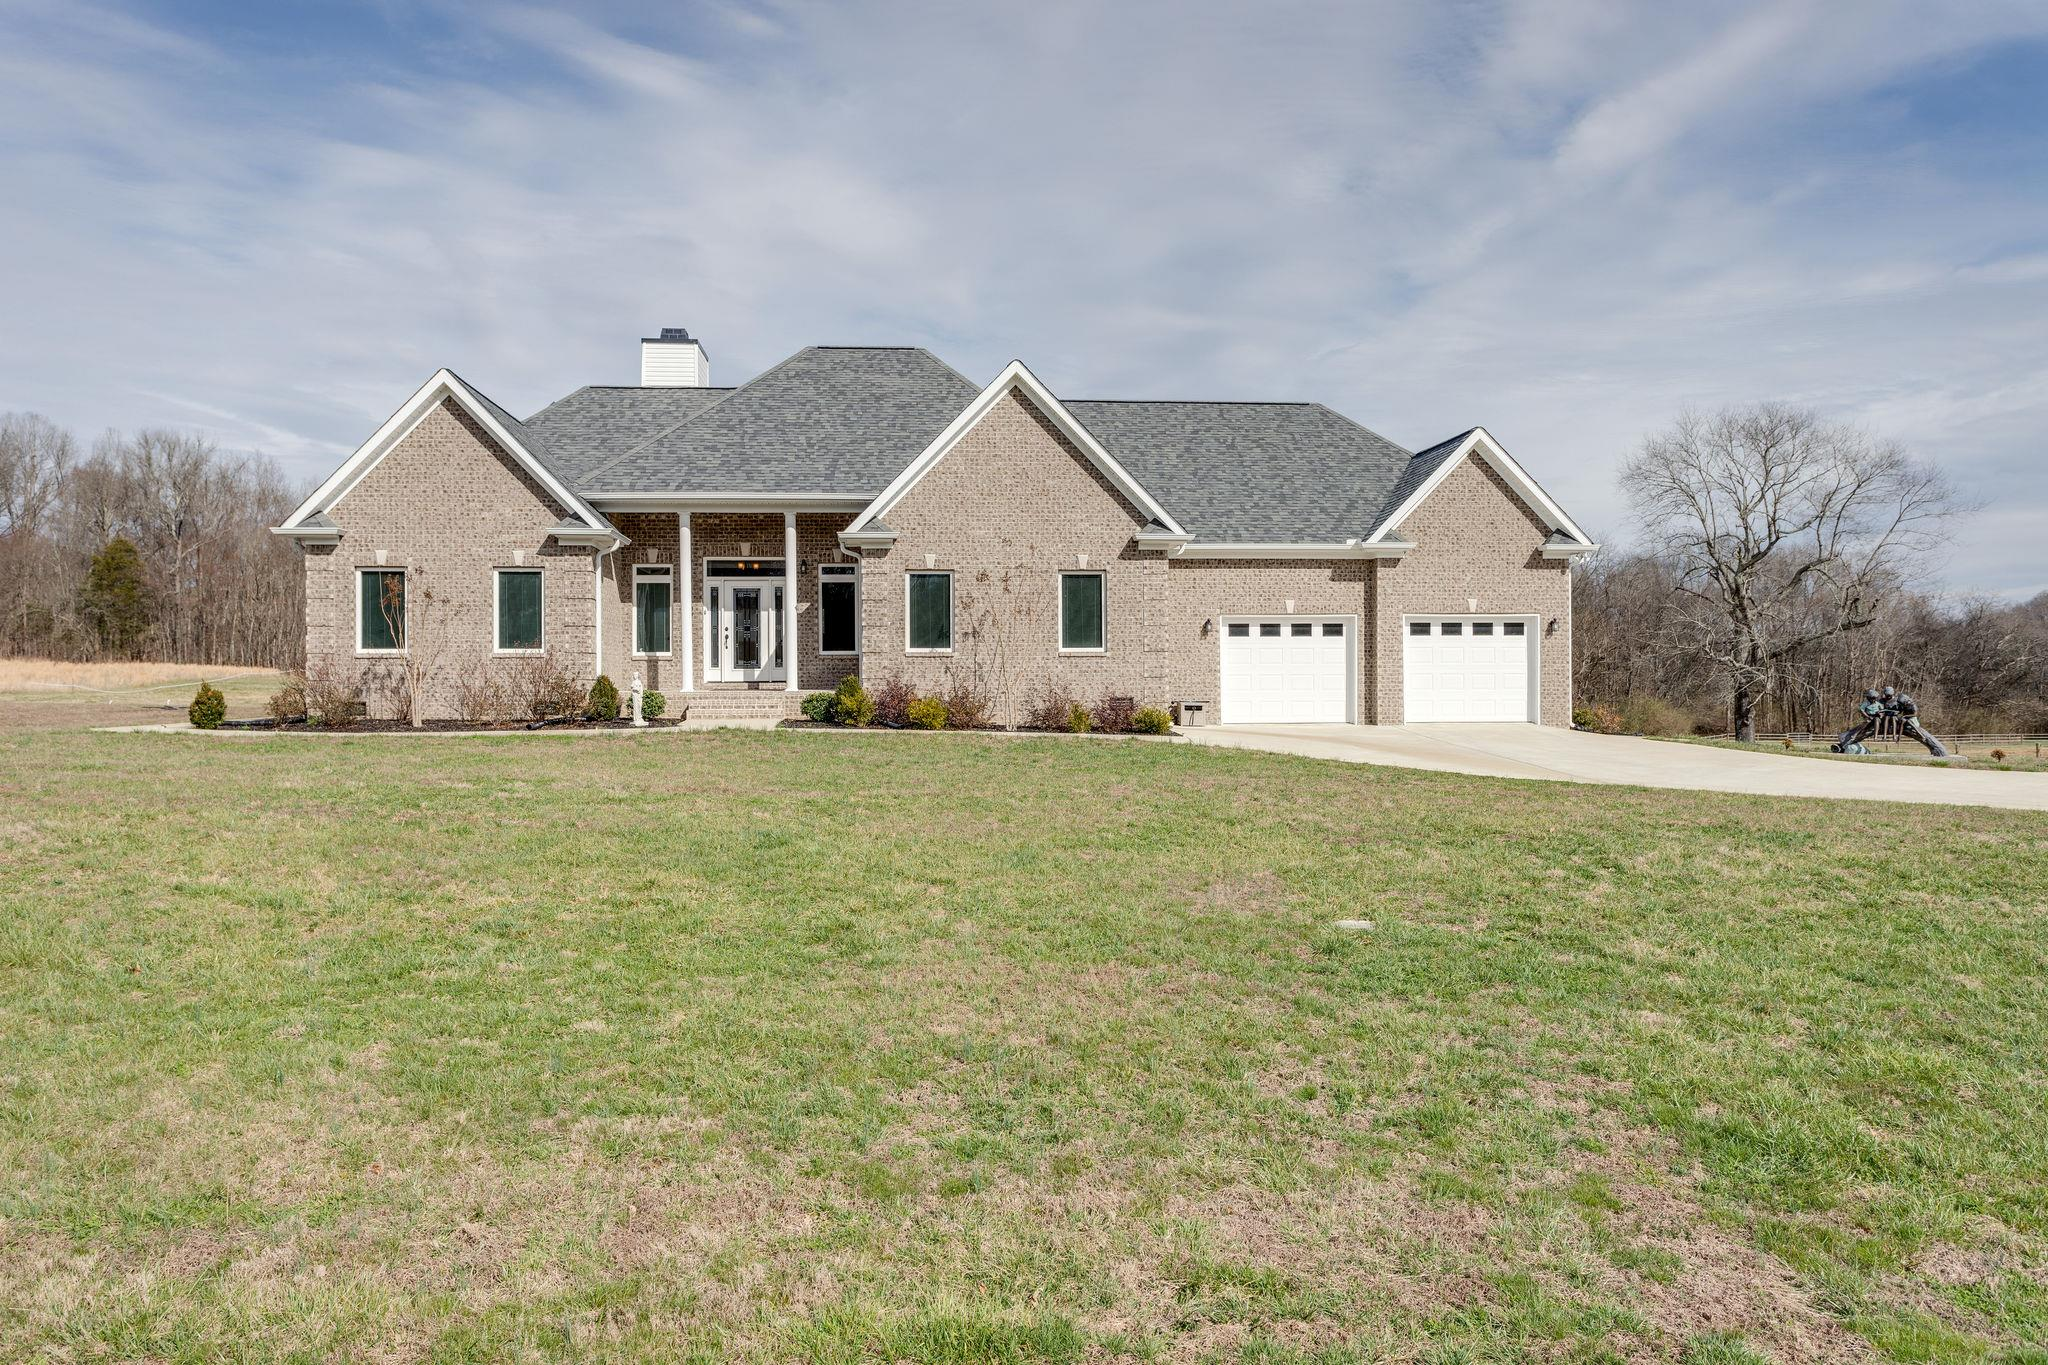 170 Scenic Cir, Pulaski, TN 38478 - Pulaski, TN real estate listing